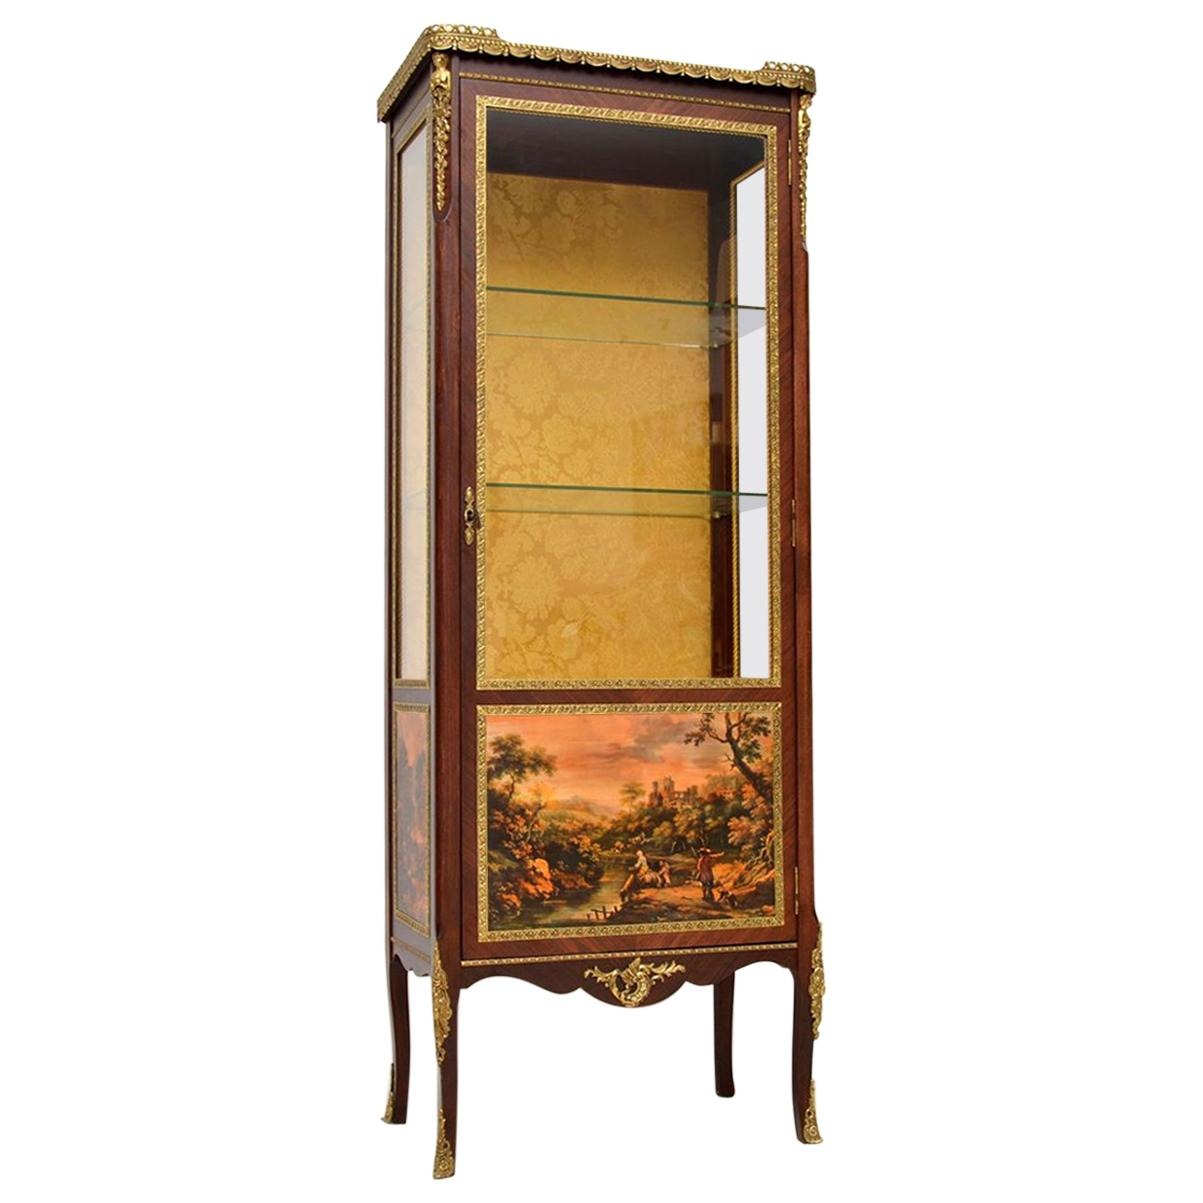 Antique Mahogany Ormolu Mounted Bijouterie Display Cabinet 19th Century Antiques 1800-1899